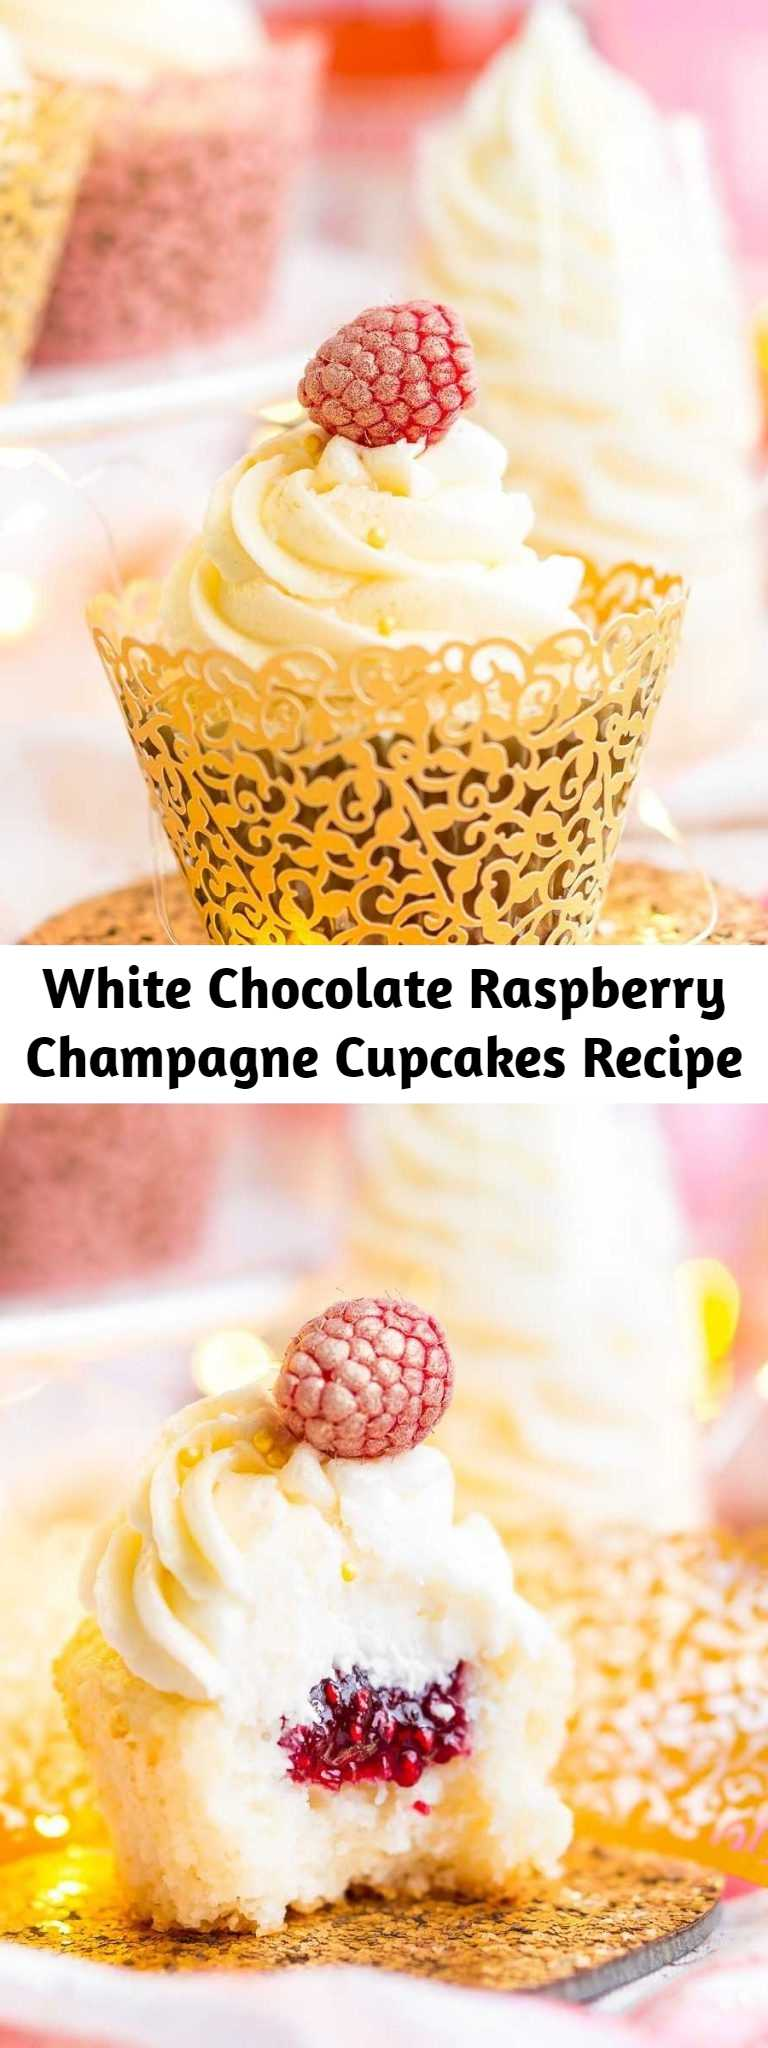 White Chocolate Raspberry Champagne Cupcakes Recipe - These White Chocolate Raspberry Champagne Cupcakes are perfect for New Year's Eve, Bridal and Baby Showers, and Valentine's Day! Light and fluffy white chocolate cake filled with raspberry filling and topped with a luscious champagne buttercream!